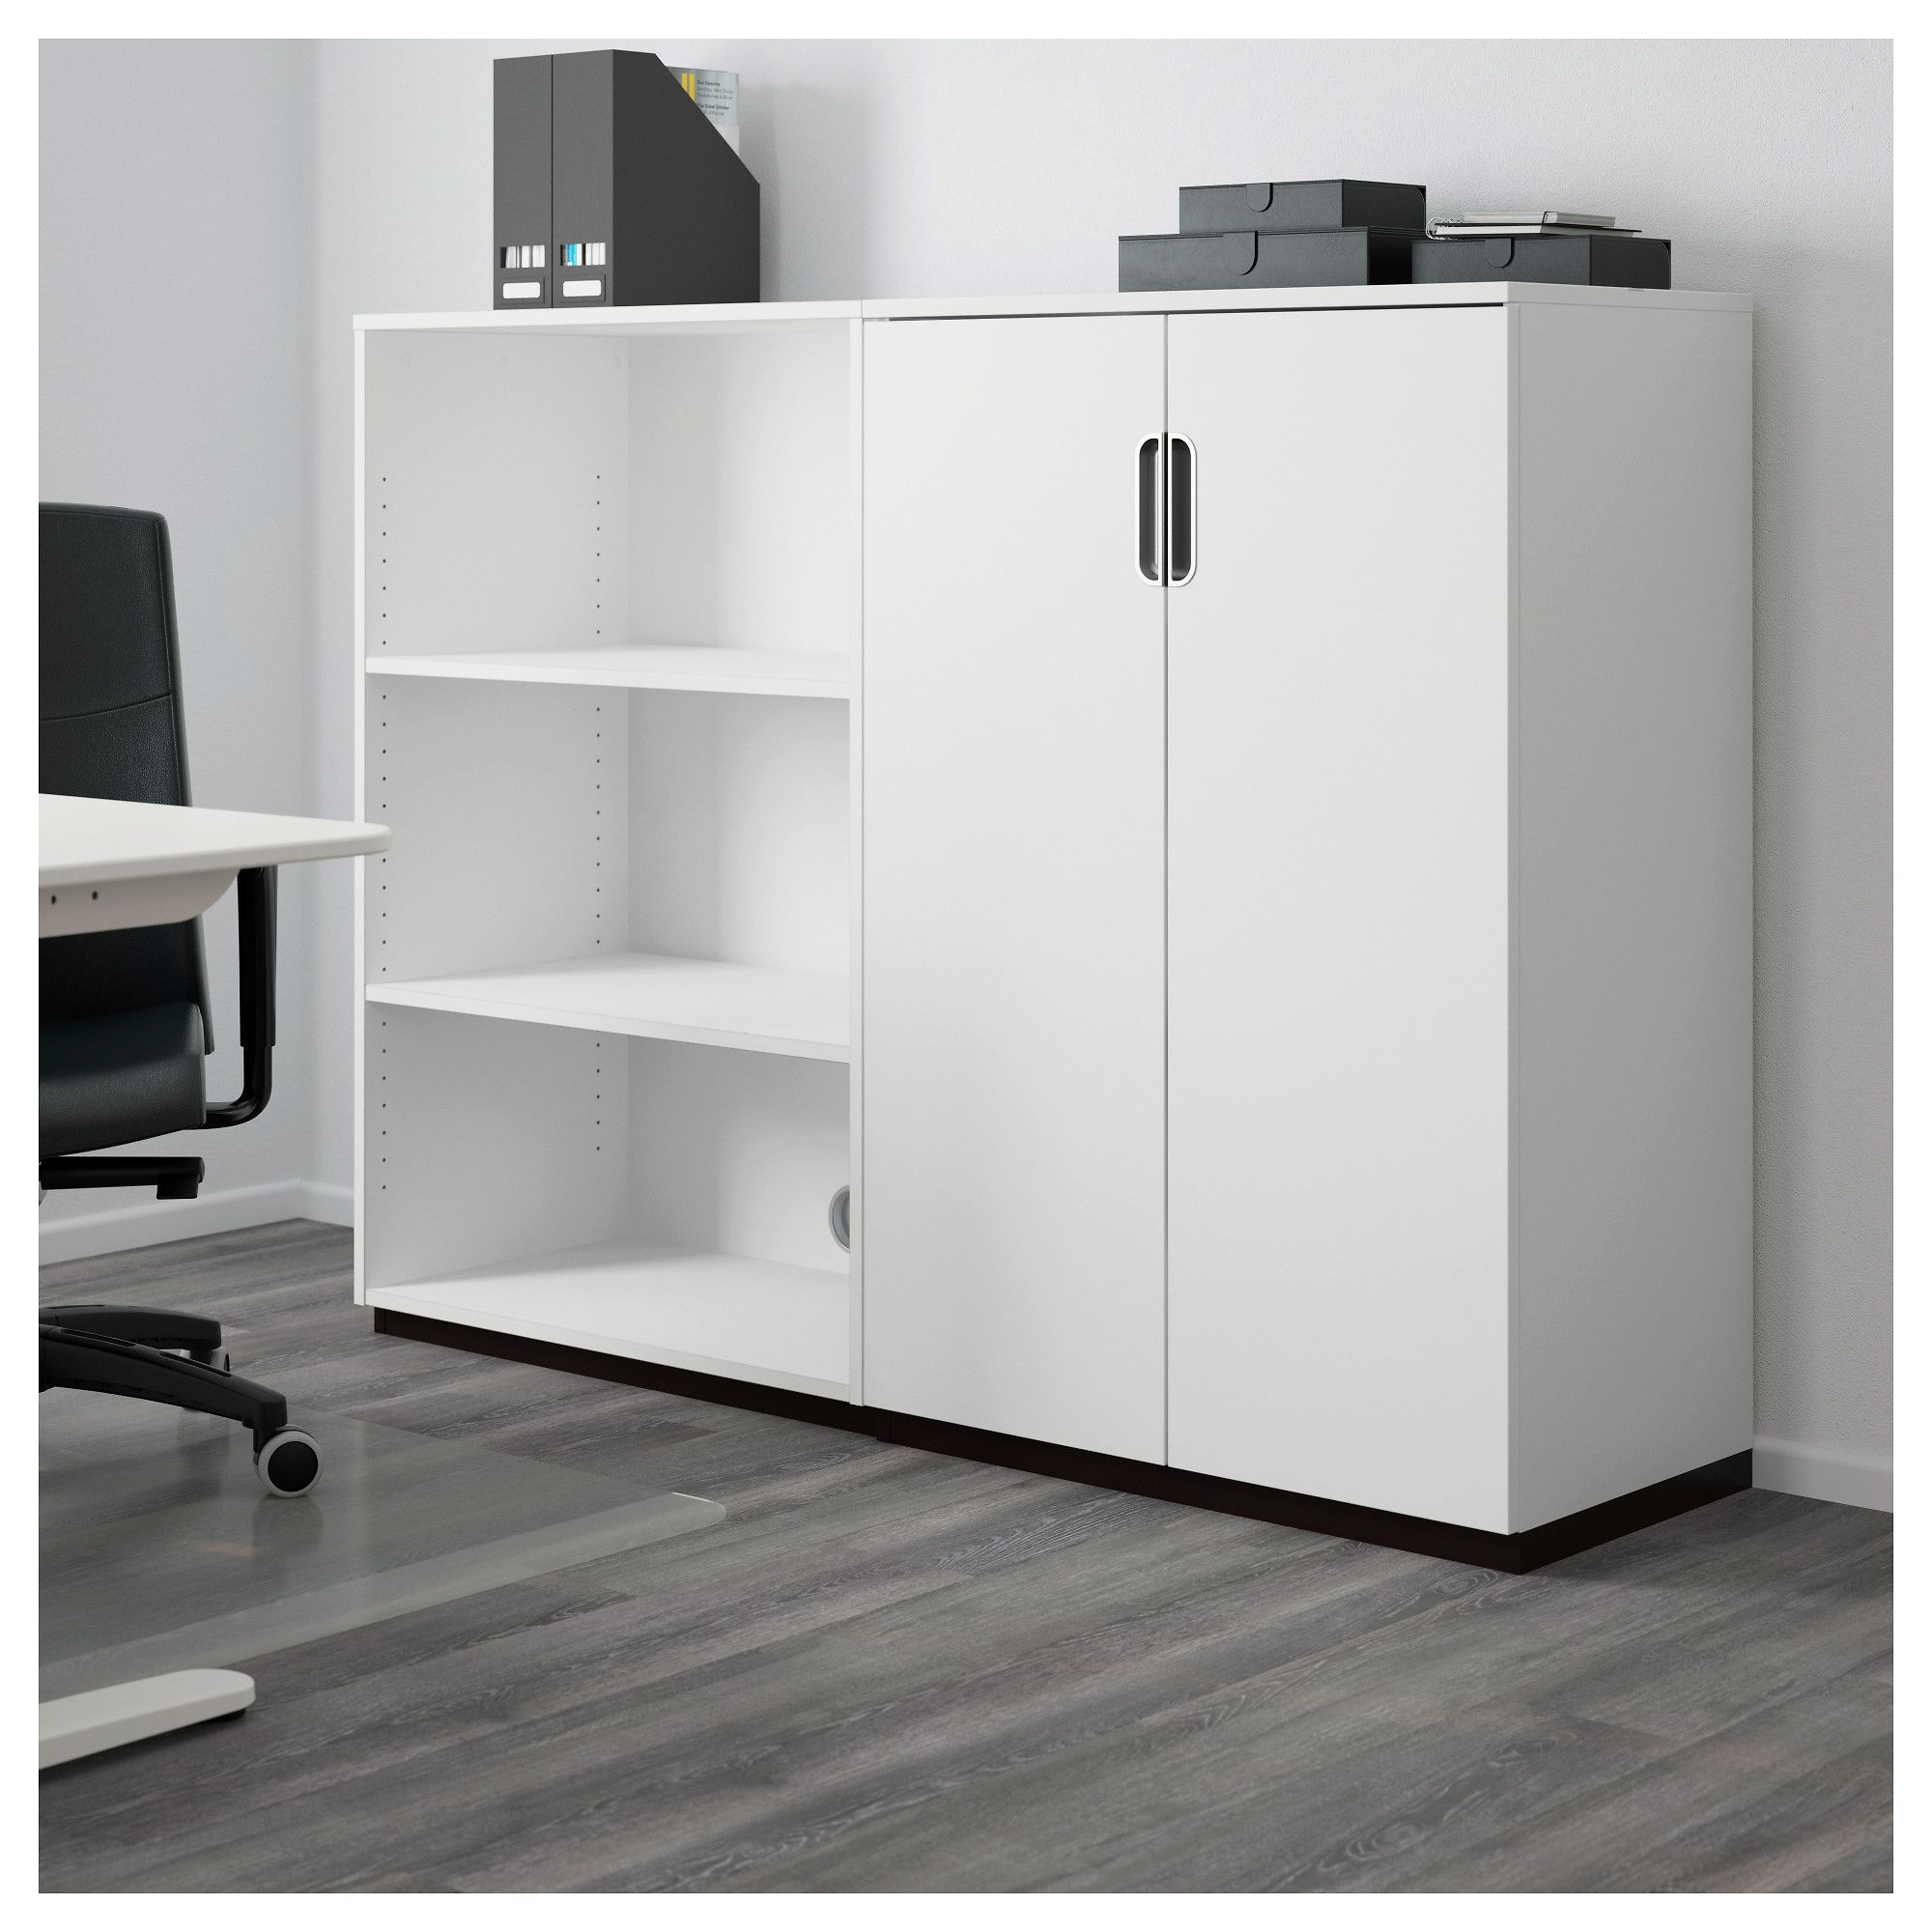 office storage unit. GALANT Storage Combination White 160x120 Cm - IKEA. Office CabinetsDrawer Unit